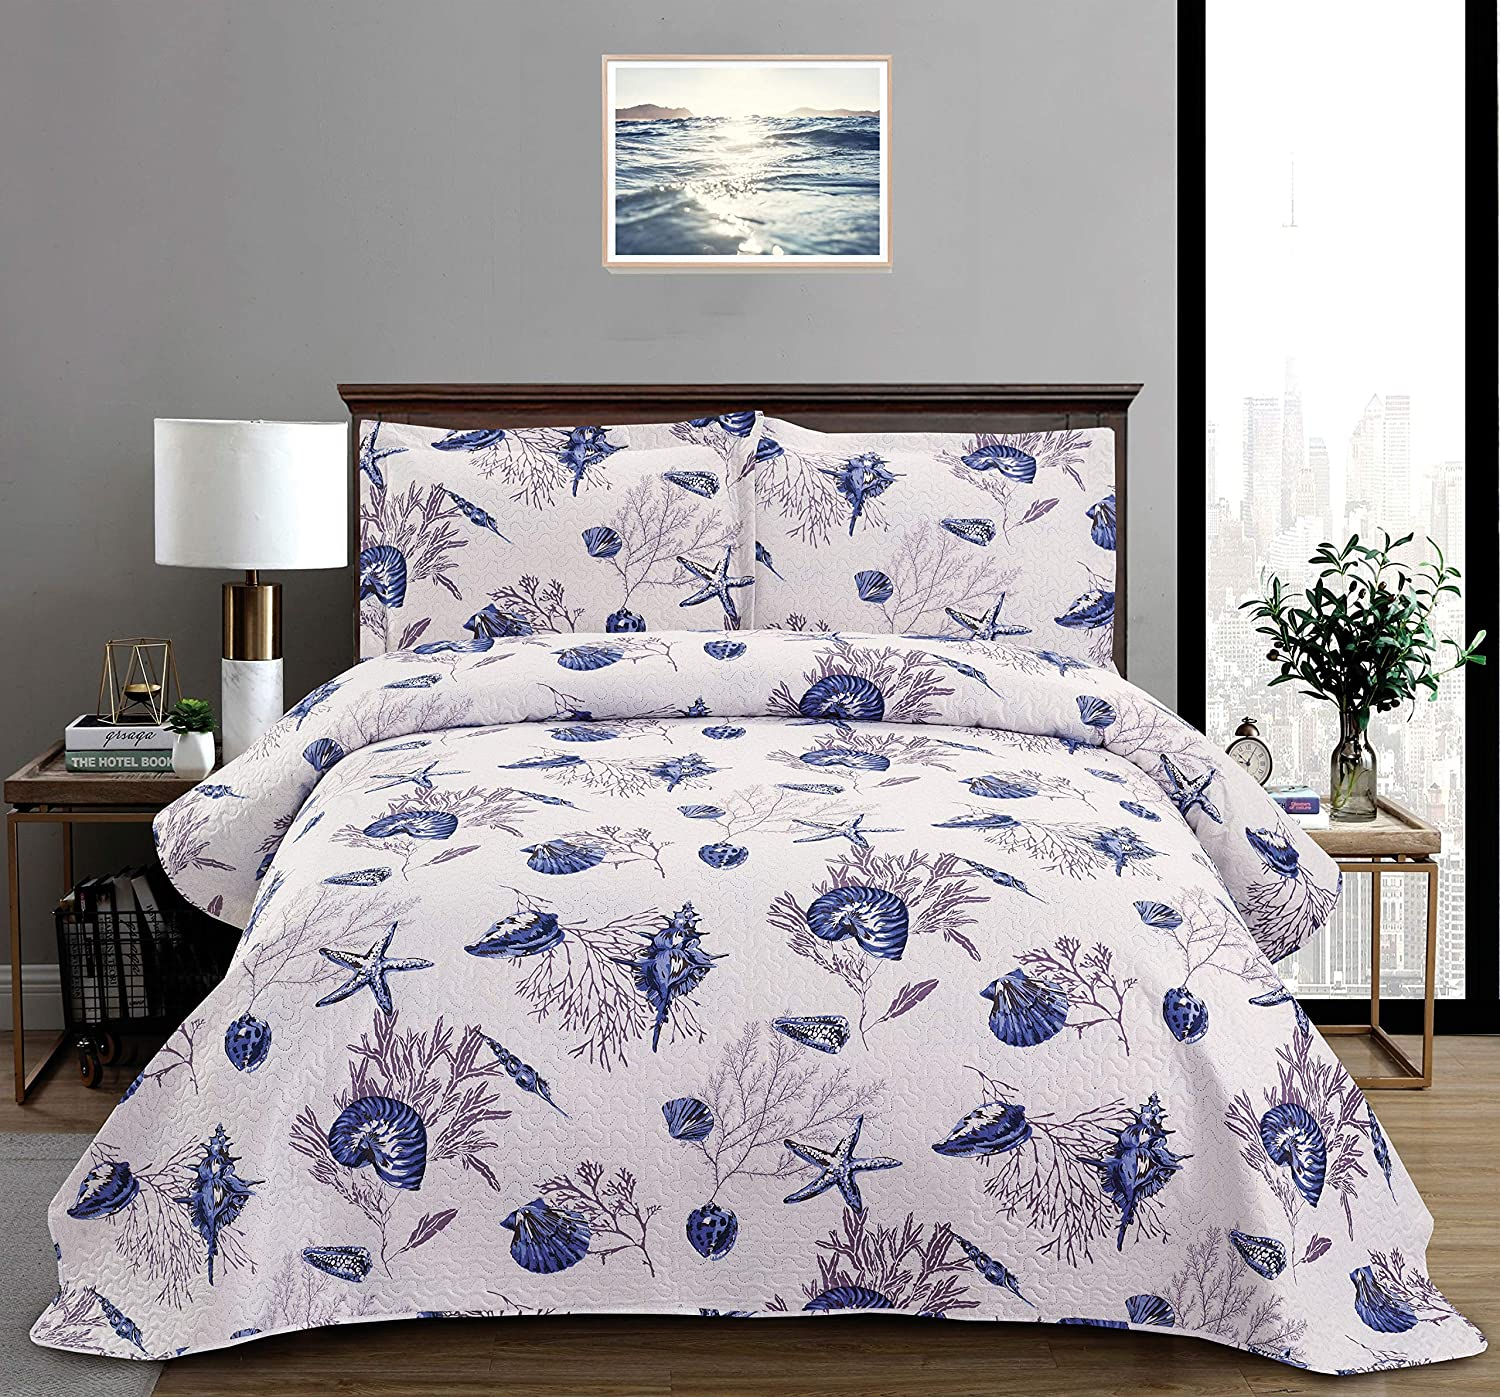 Amazon Com 3 Piece Ocean Themed Thin Quilt Set For Summer Twin With Shams Vivid Seascape Includes Blue Conch Starfish Coral Quilted Bedspread Lightweight Breathable Coverlet Bedding Bed Cover Lavender Home Kitchen